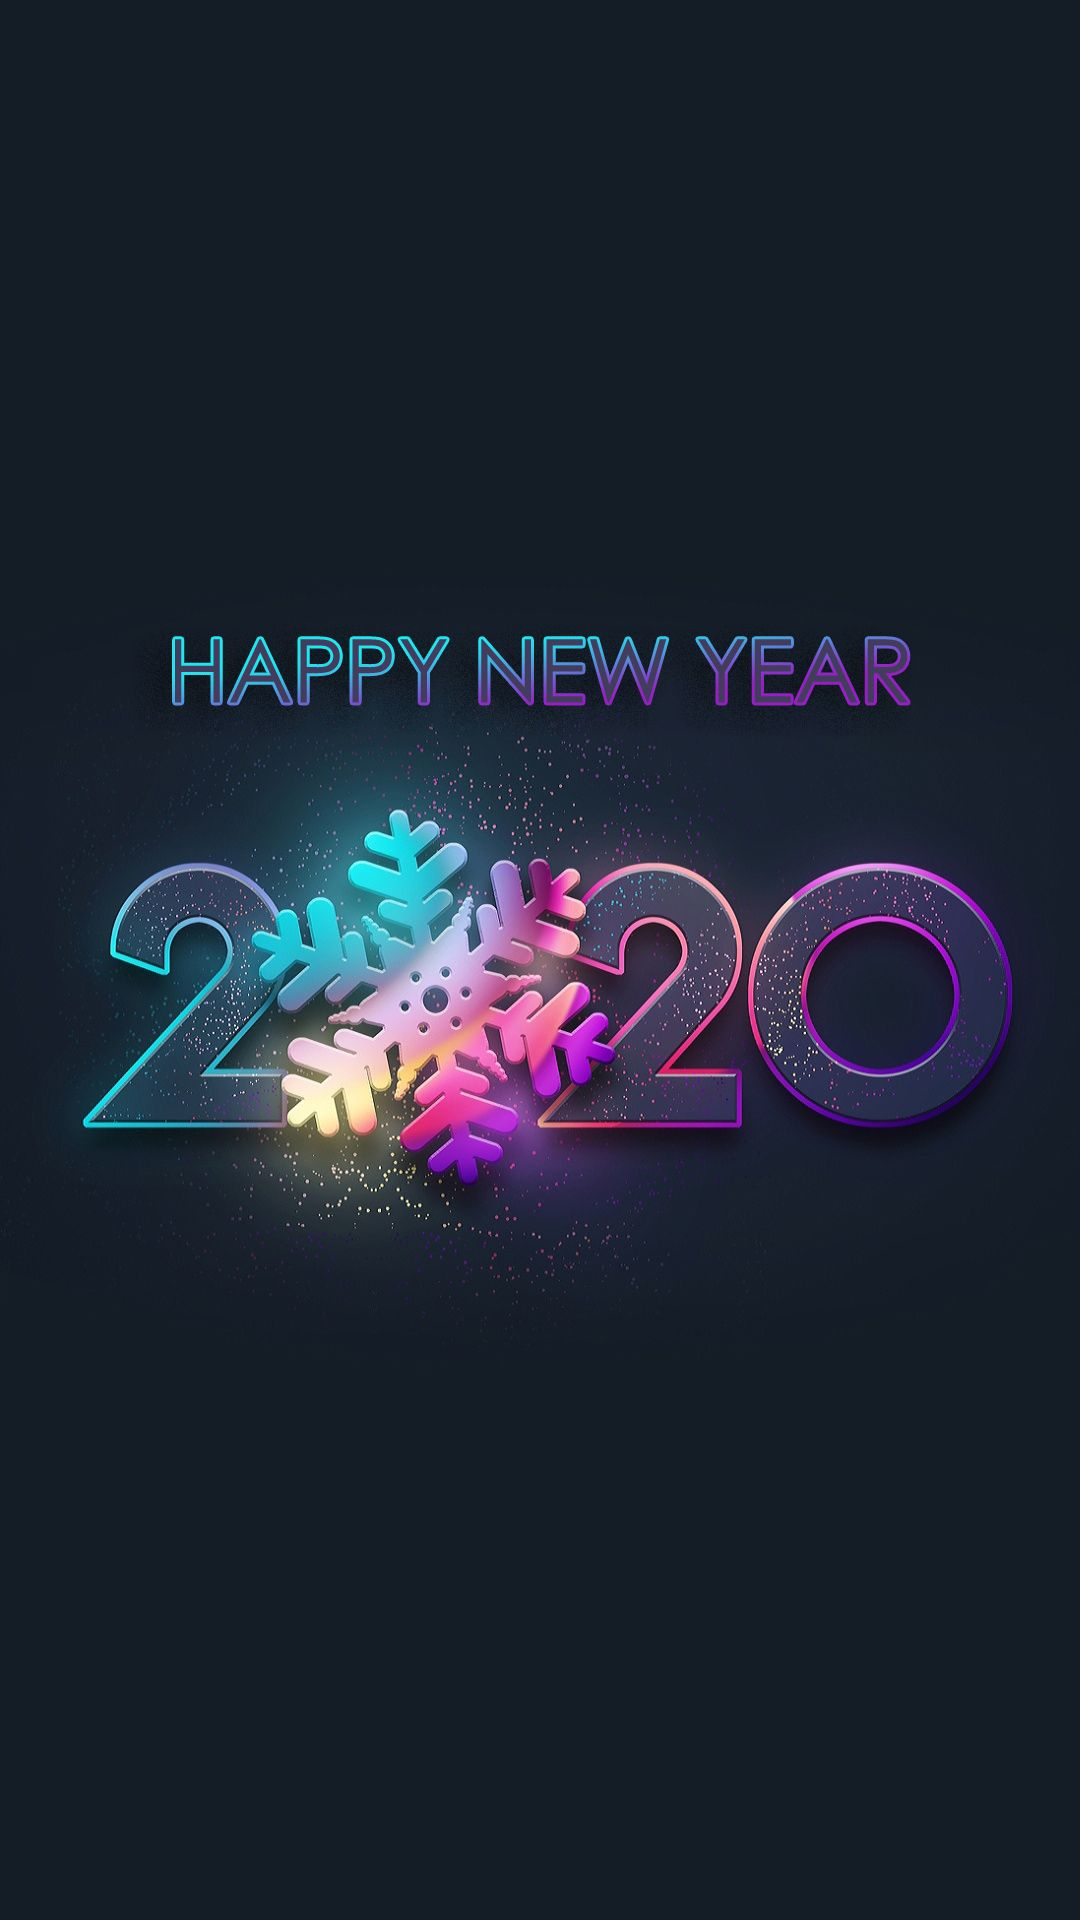 Download Happy New Year 2020 Wallpapernbsp for your Android 1080x1920